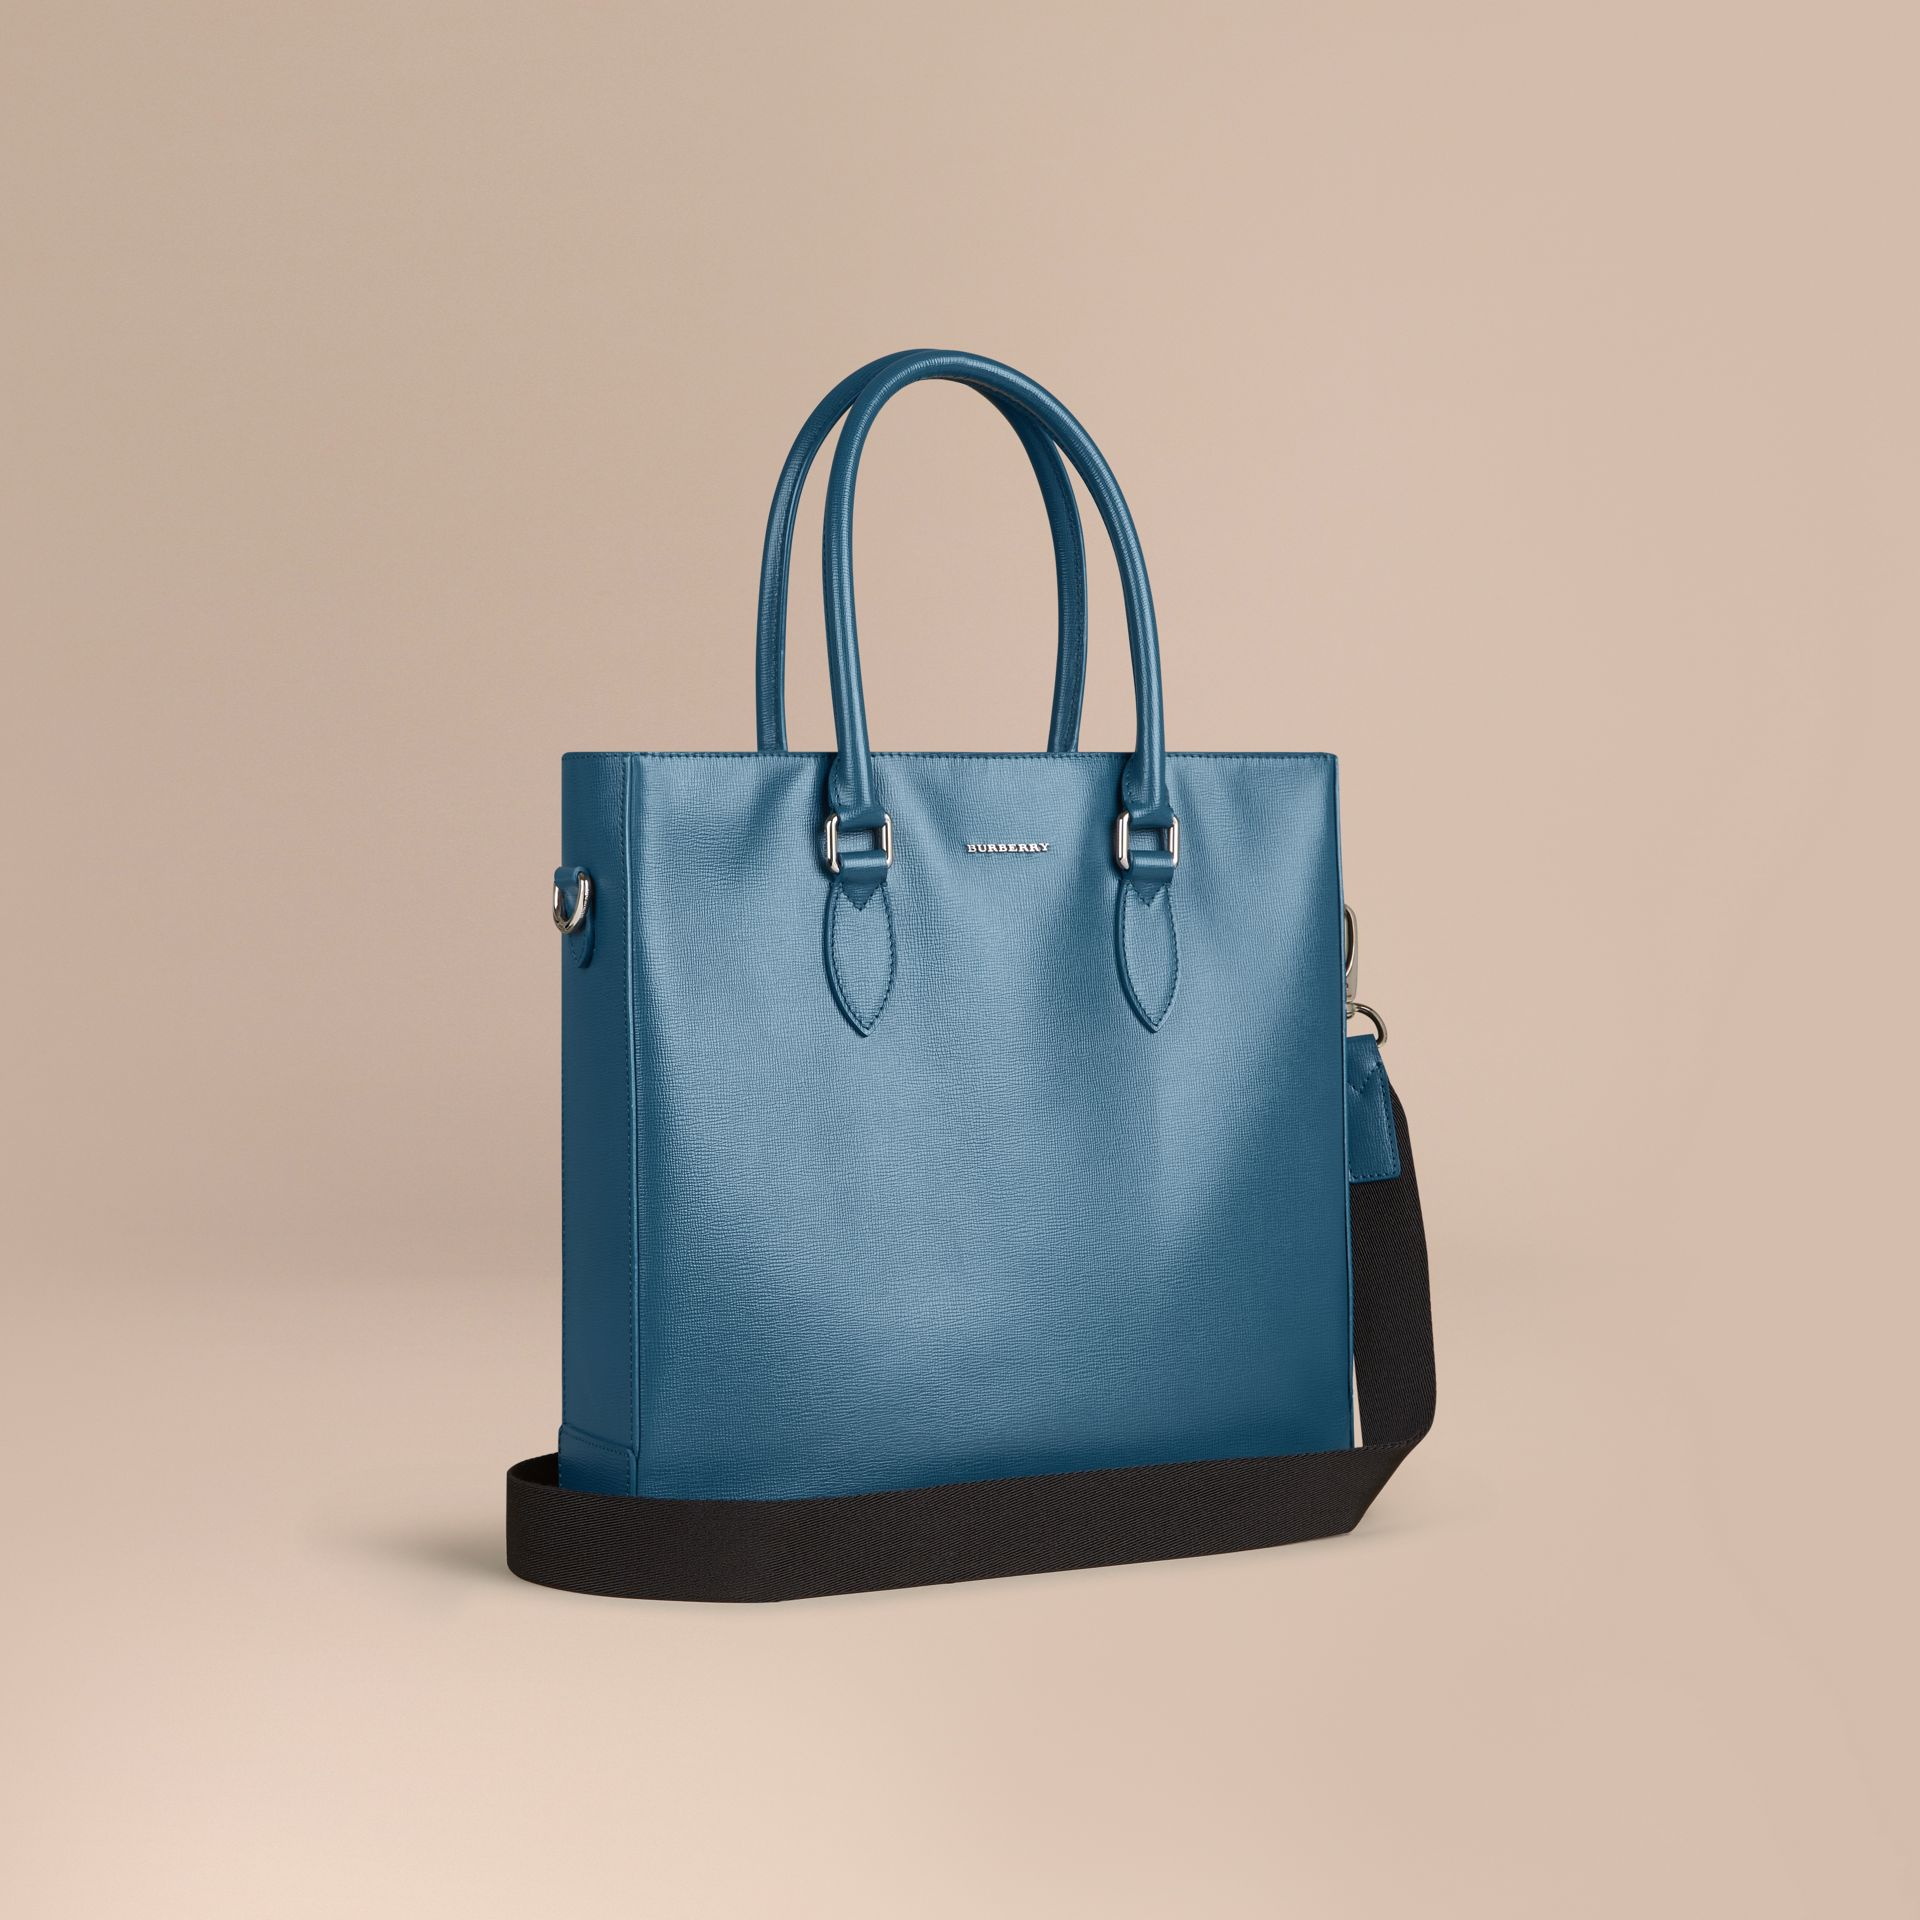 London Leather Tote Bag in Mineral Blue - gallery image 1